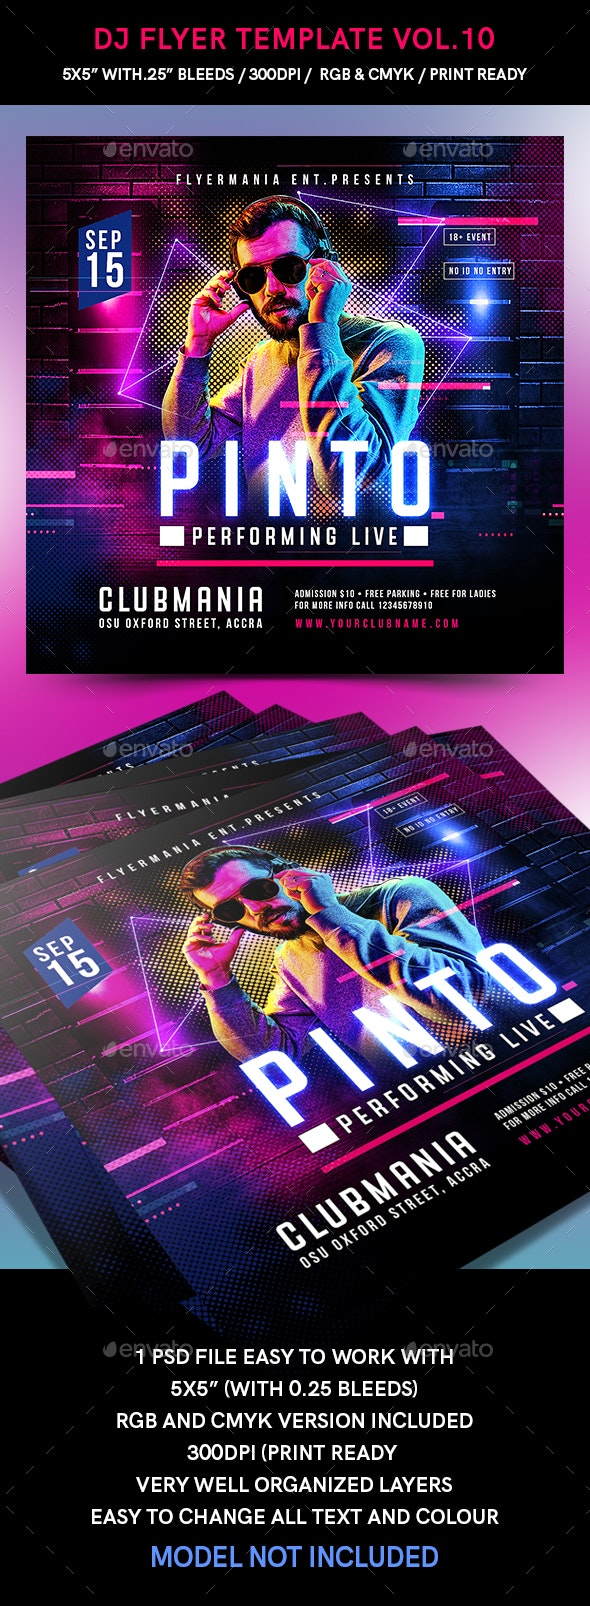 DJ Flyer Template Vol.10 - Events Flyers